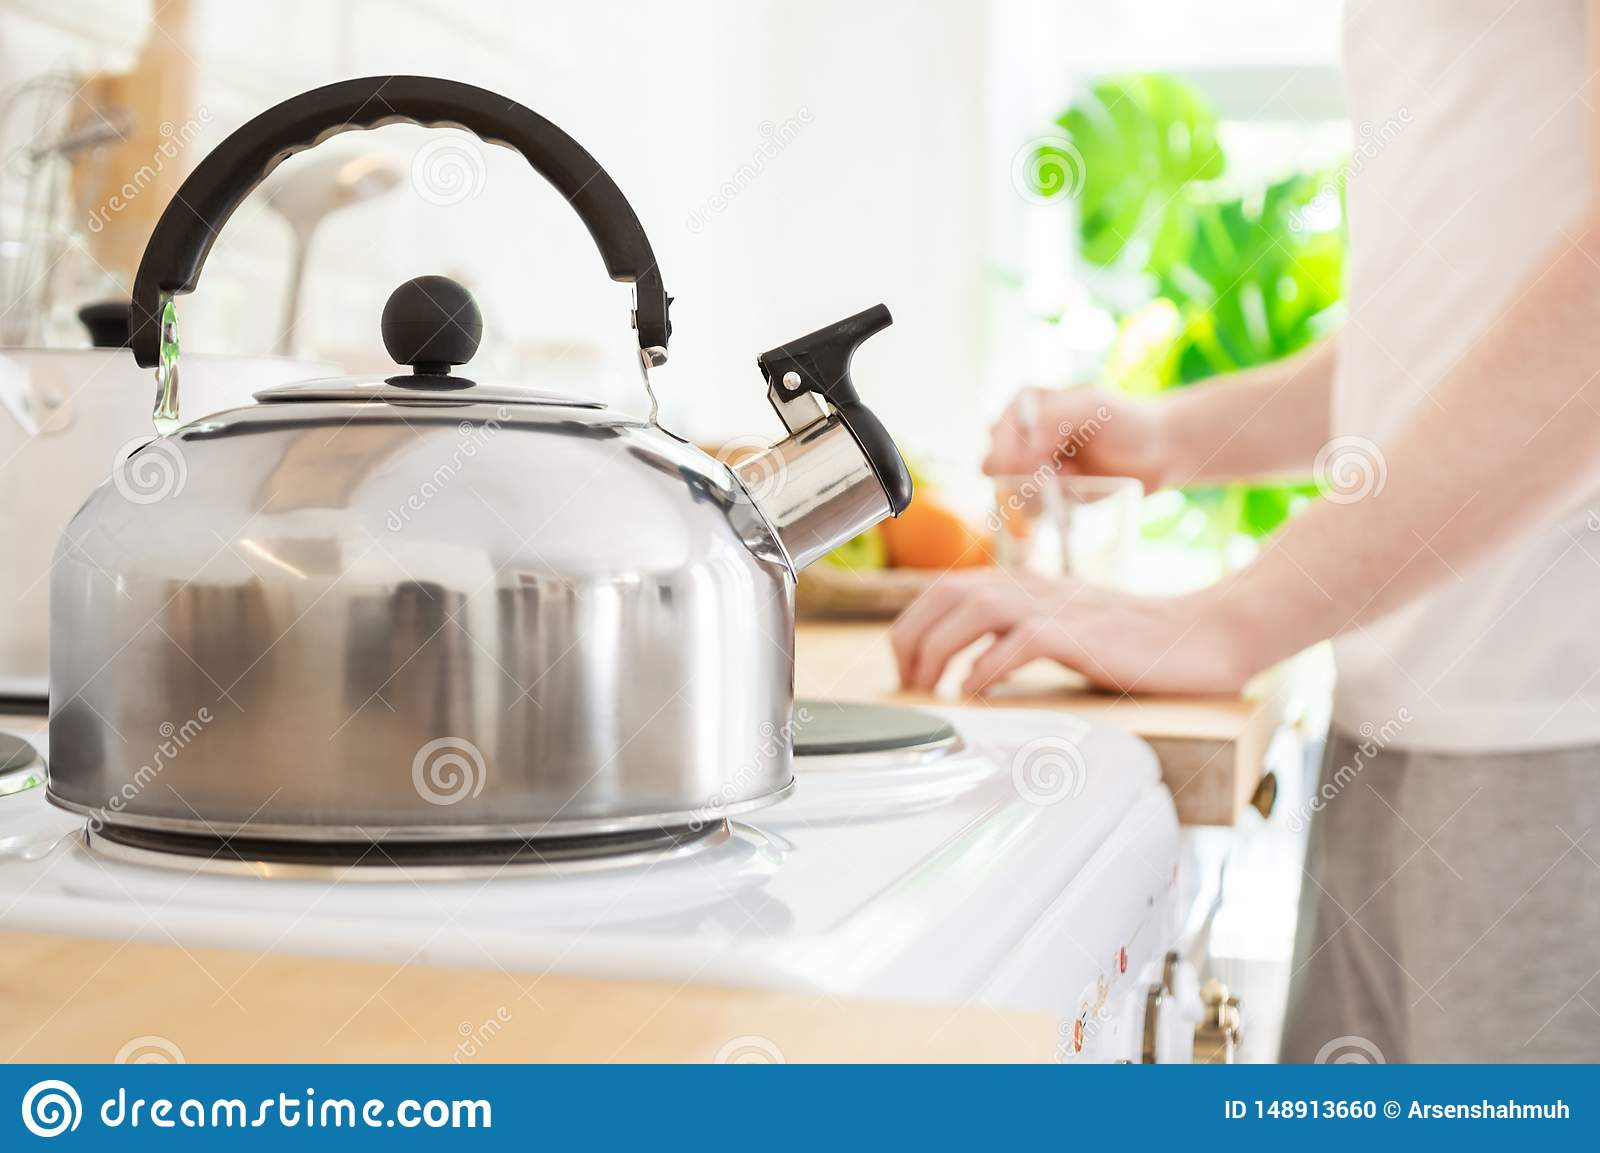 Kettle on on electric stove in the kitchen. Morning coffee or making breakfast concept